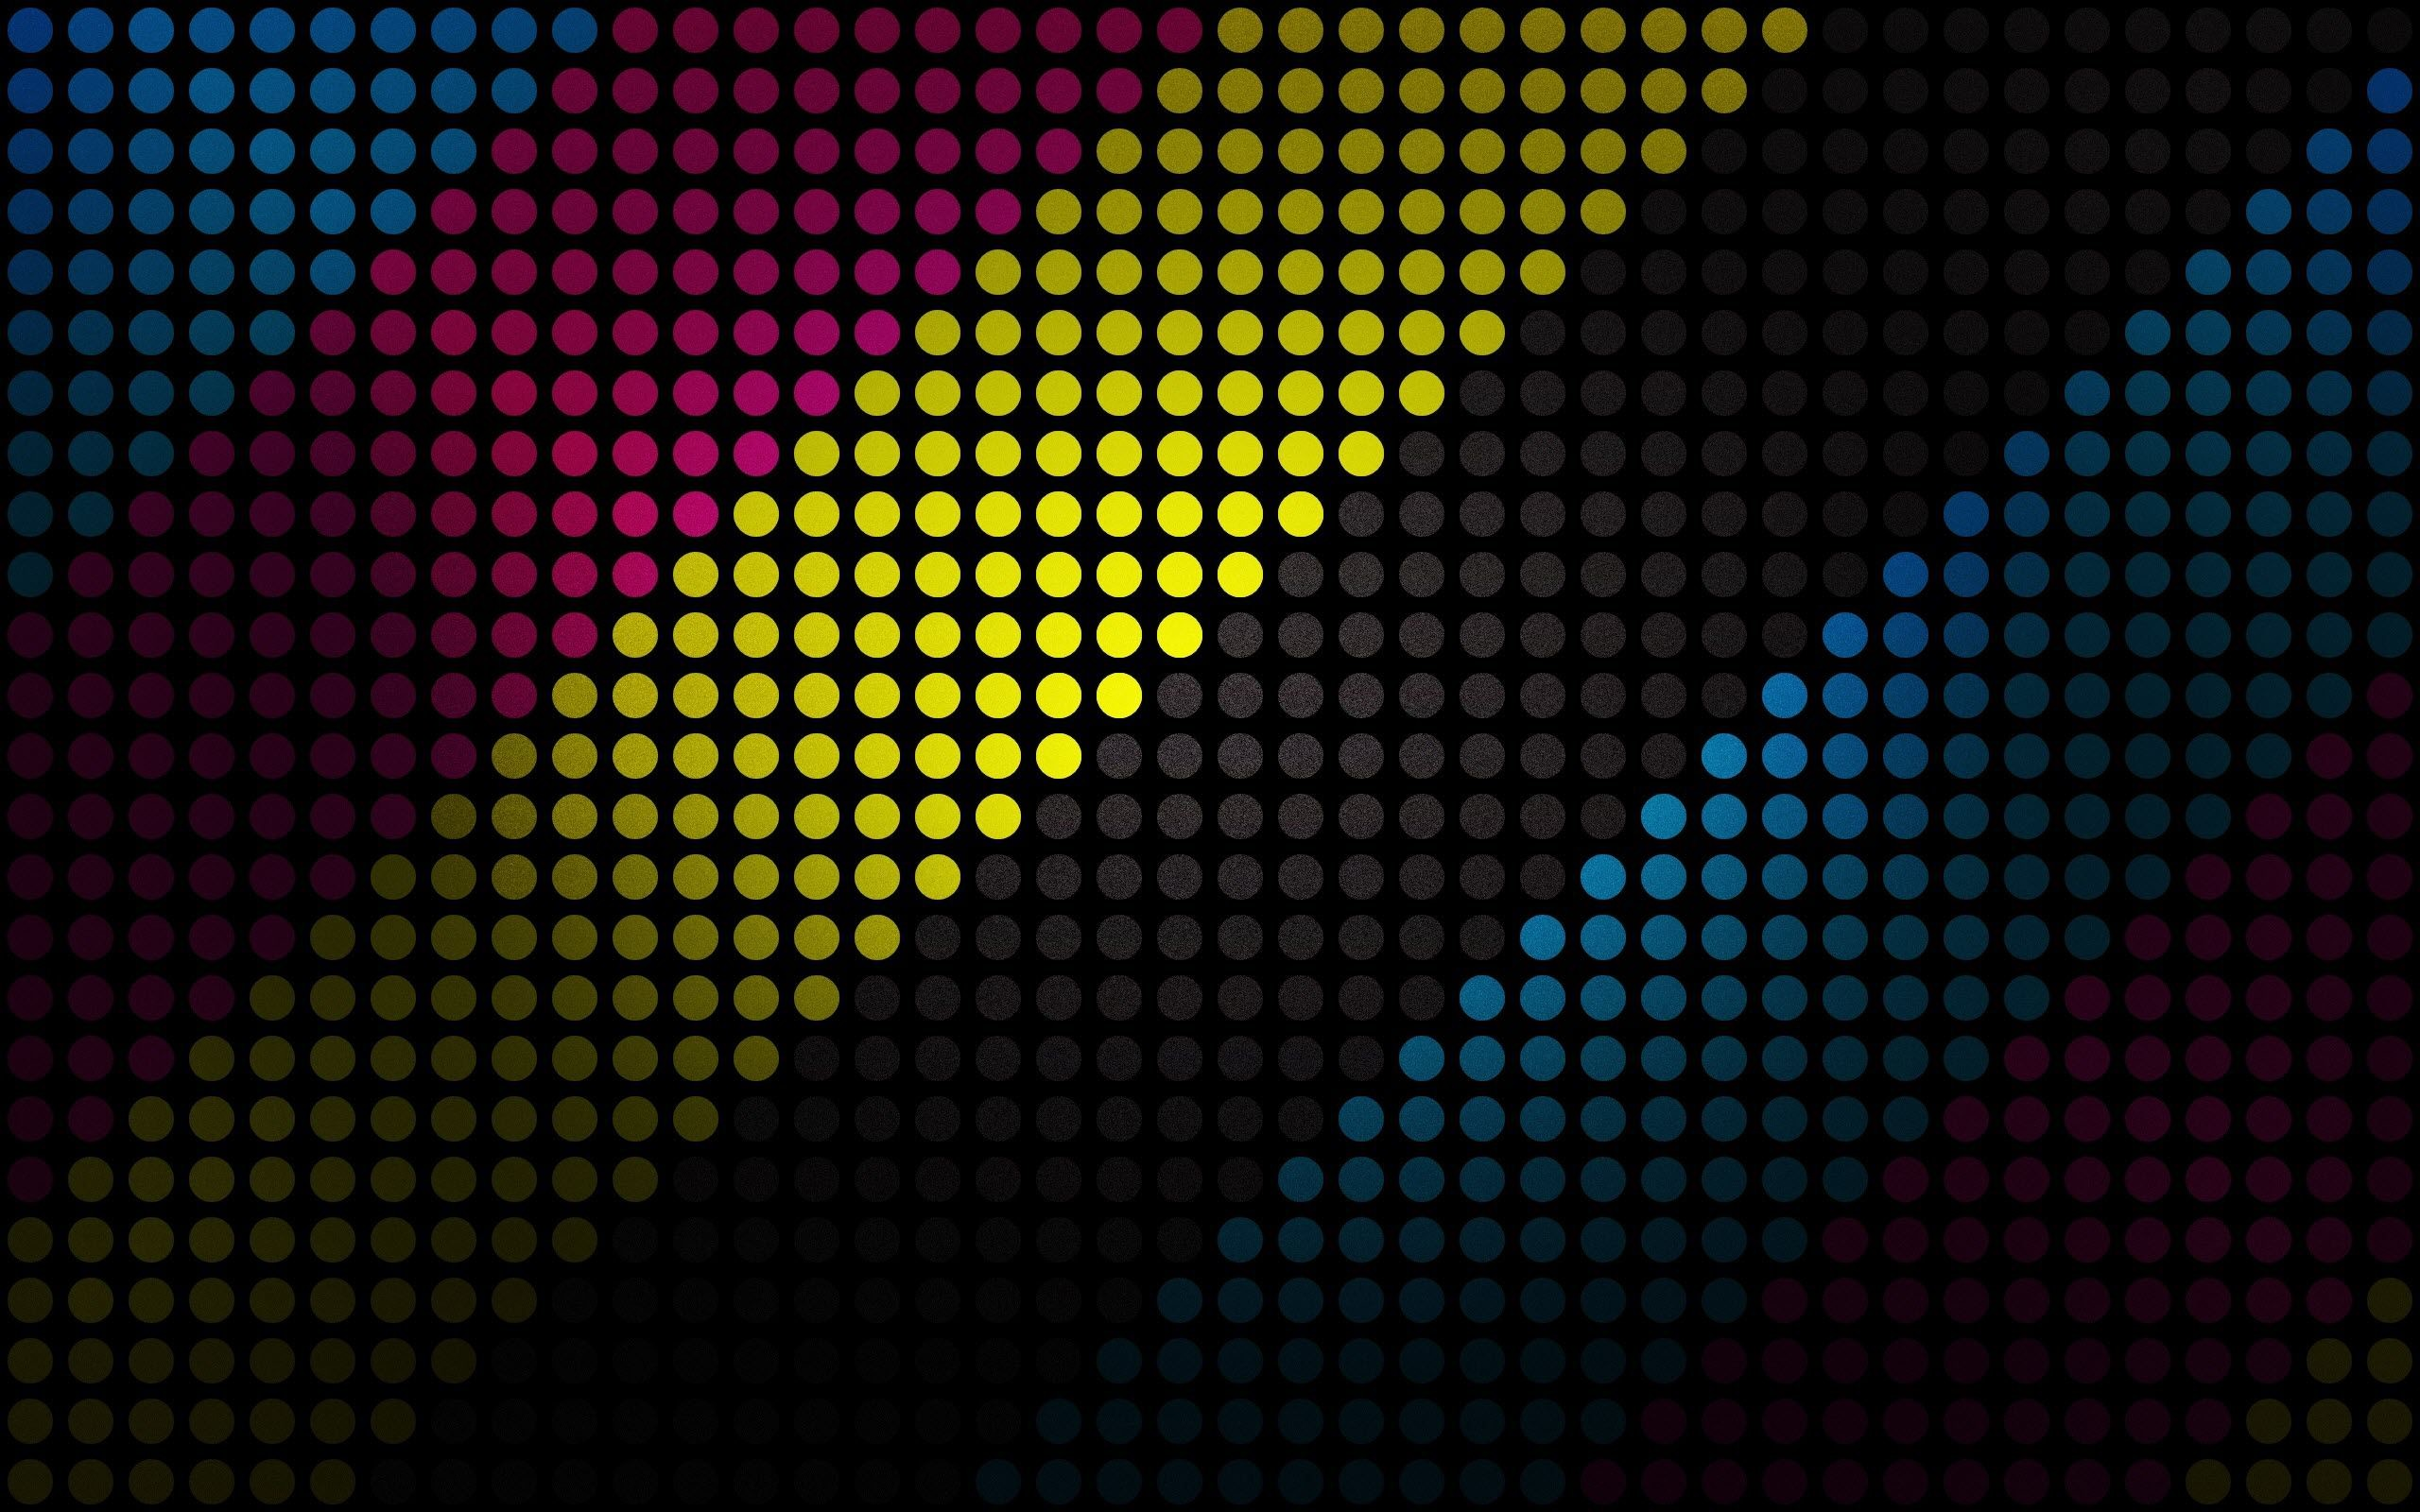 2560x1600 Dotted Abstract Wallpapers #4238732,  | All For Desktop